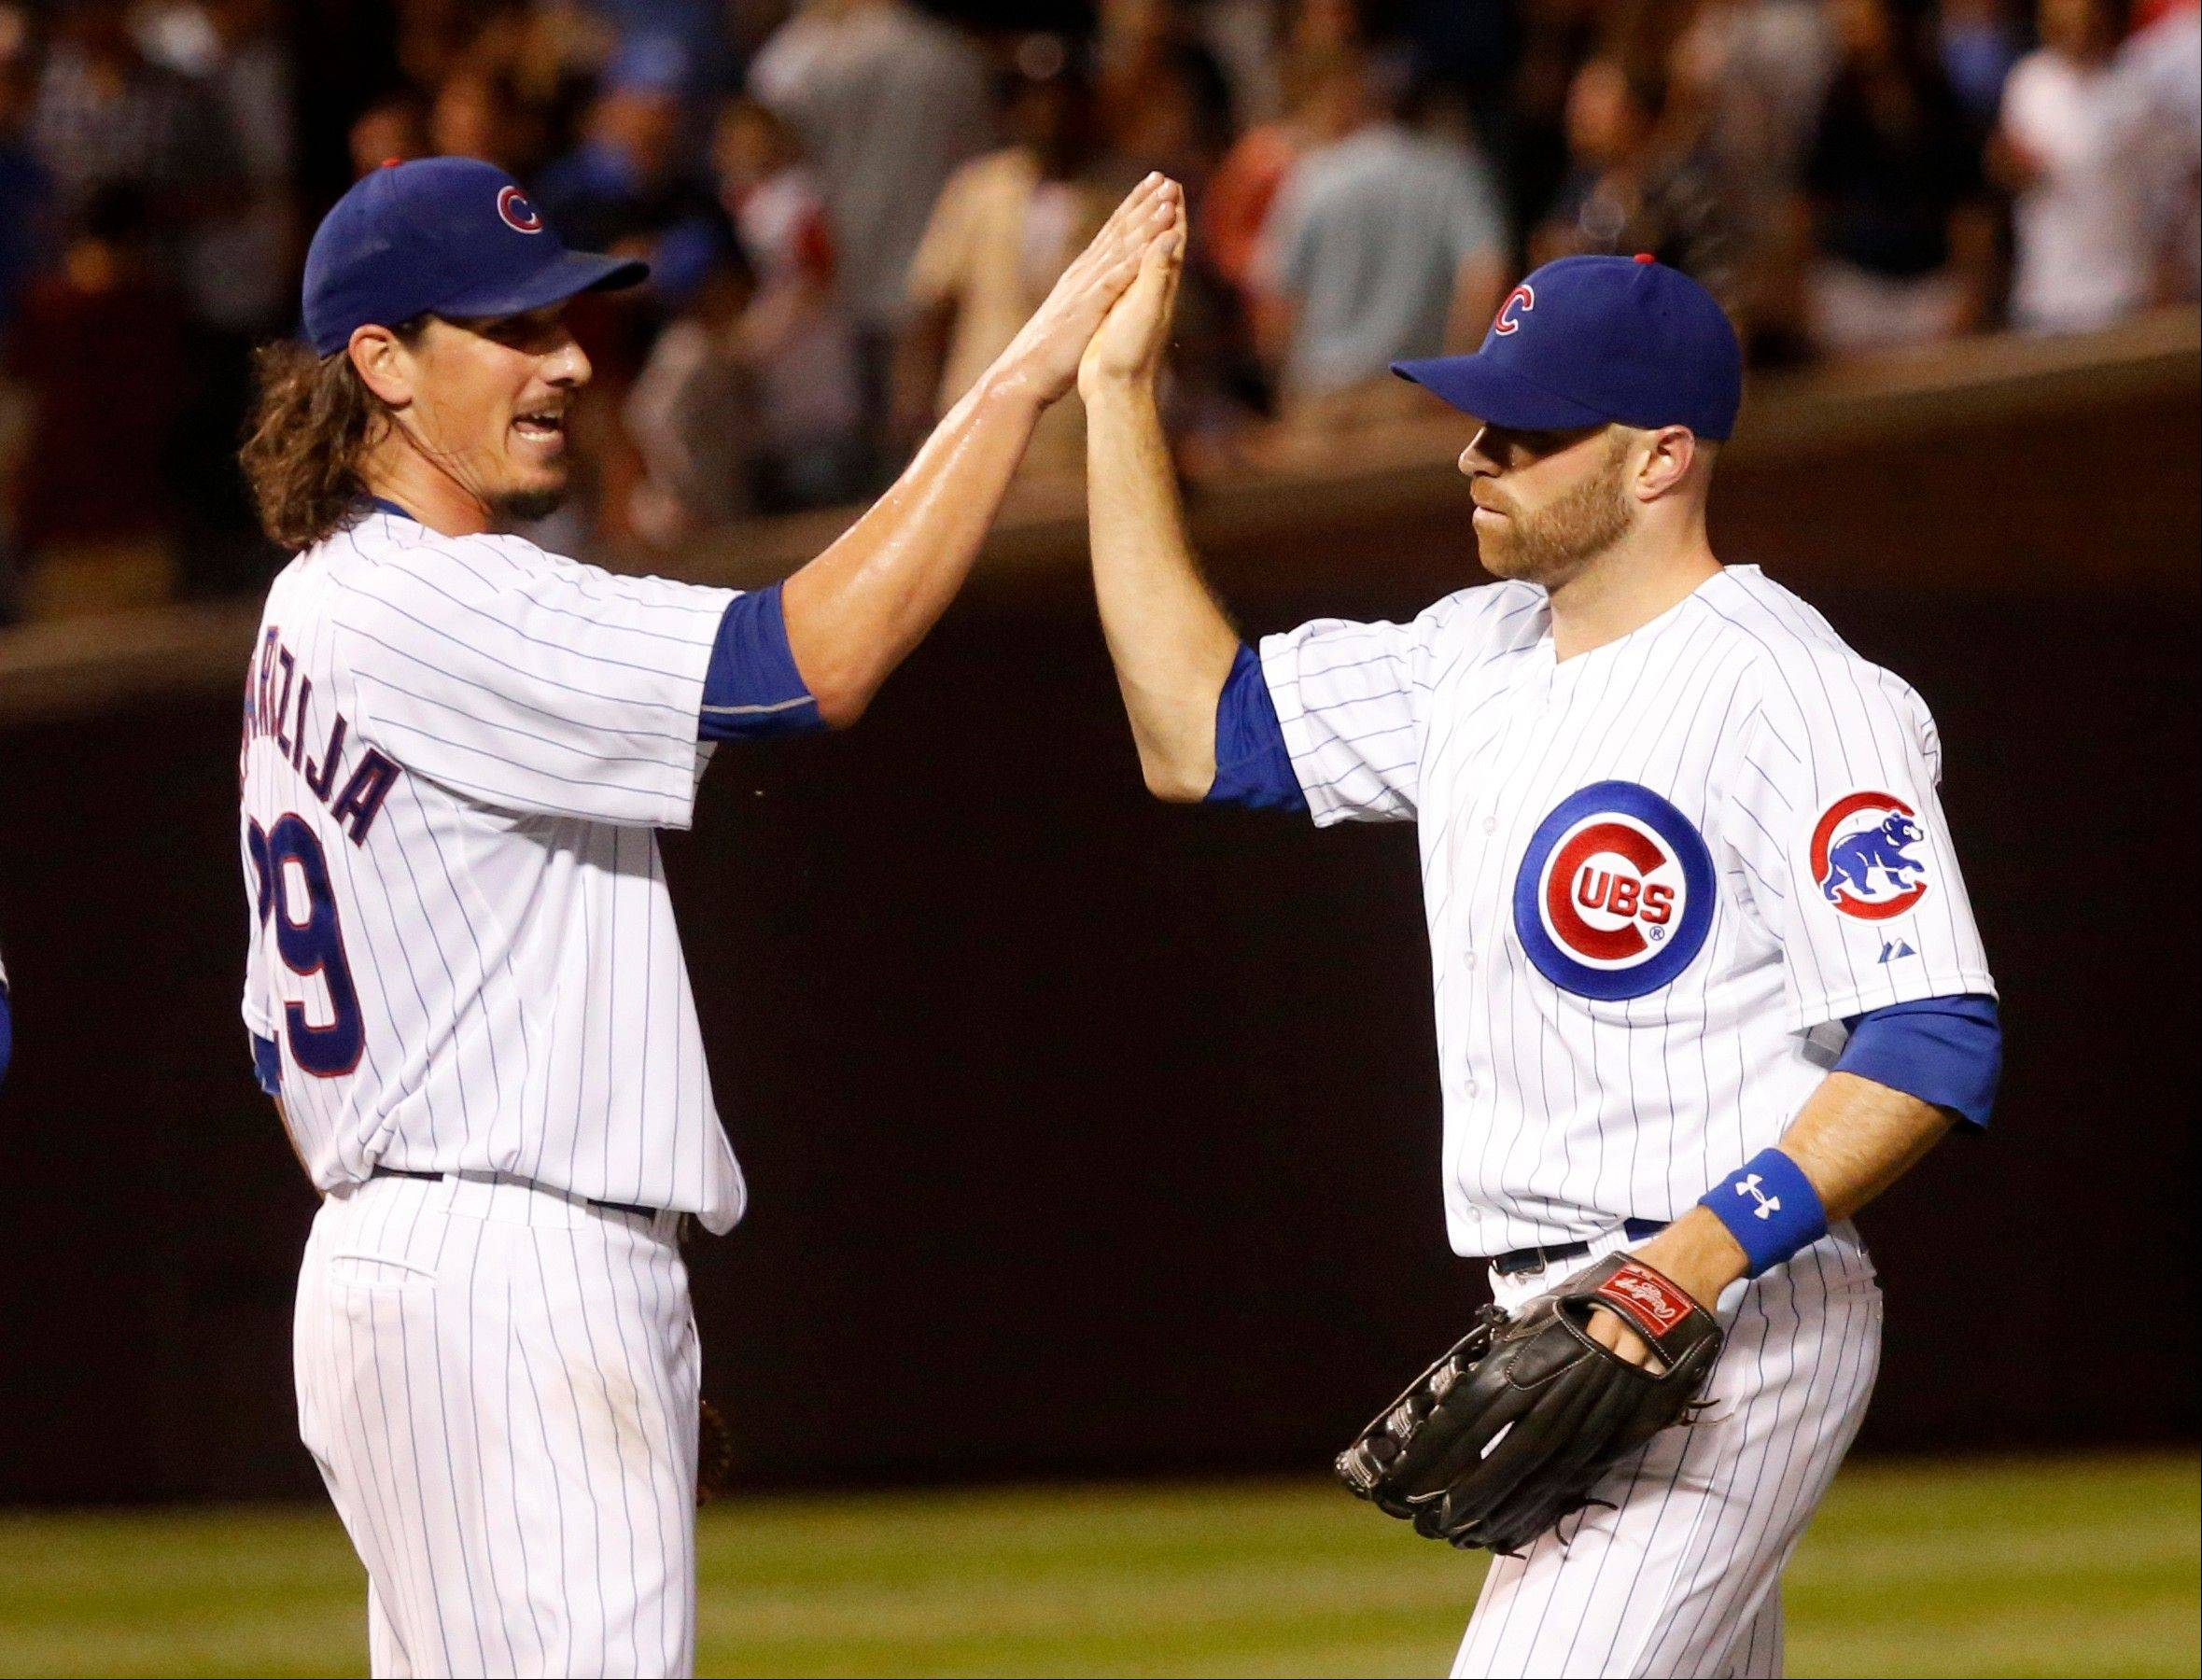 Starting pitcher Jeff Samardzija, left, celebrates with right fielder Nate Schierholtz after the Cubs' victory over the Nationals on Monday night at Wrigley Field. Samardzija went the distance for the win, and Schierholtz hit for distance with 2 home runs and 6 RBI.